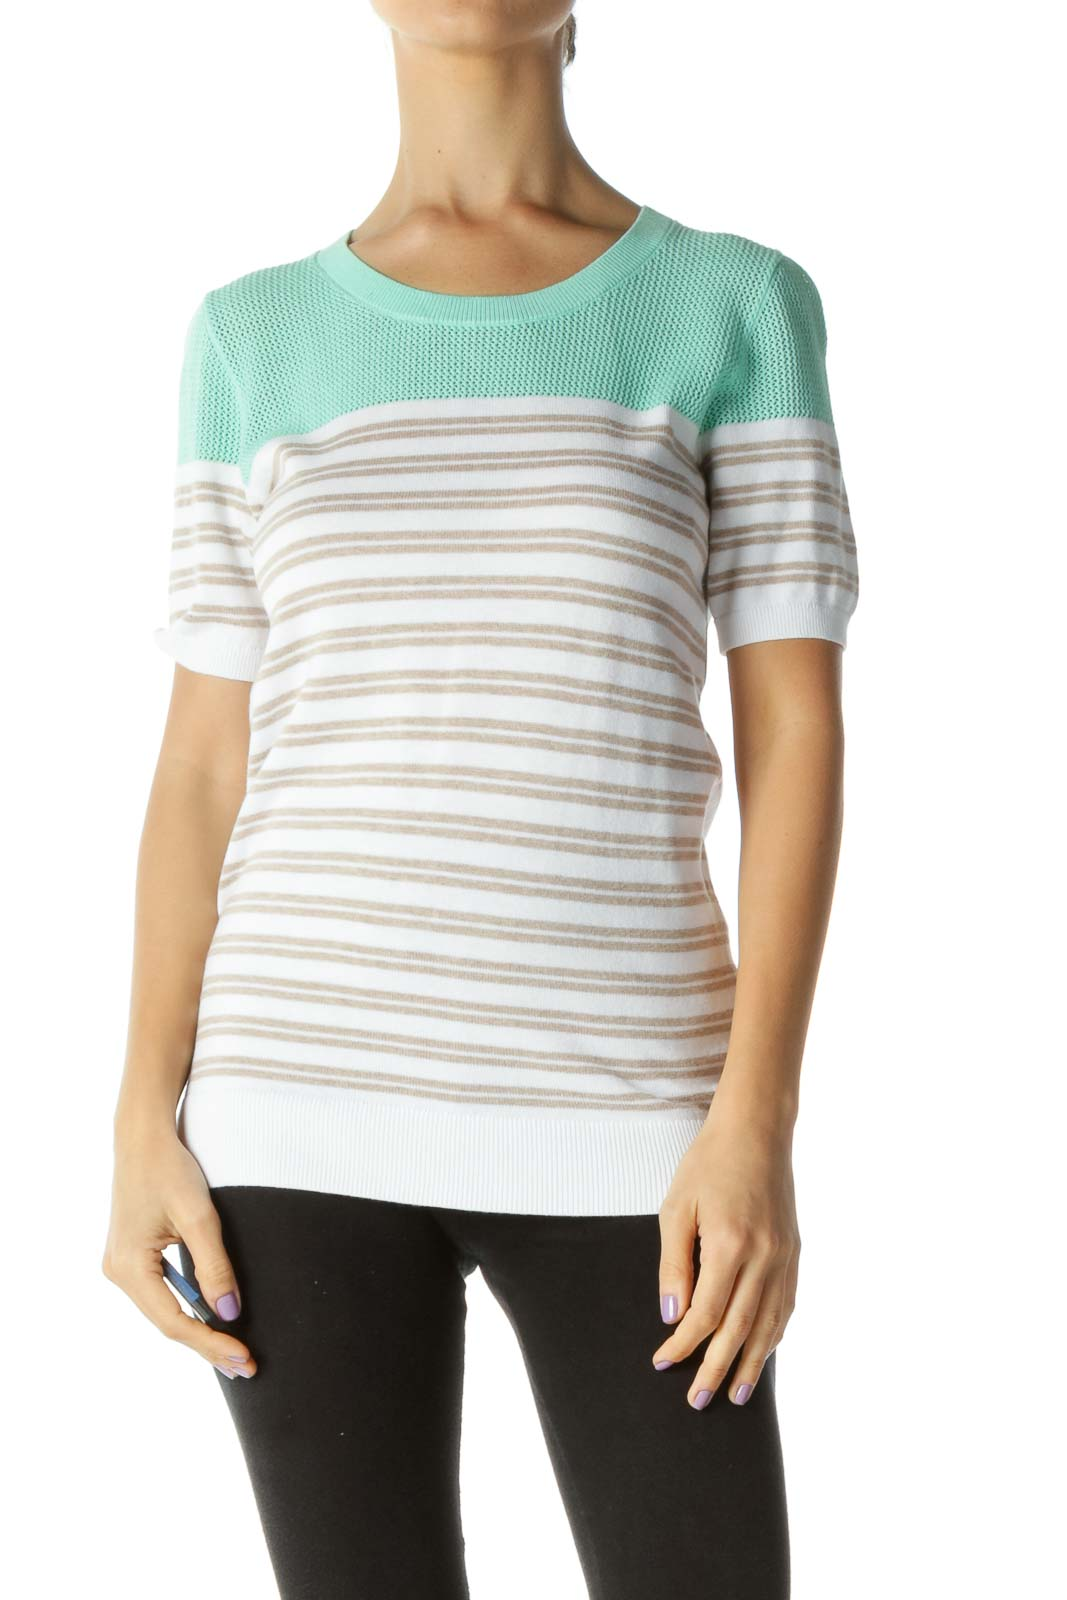 Mint-Green Brown White Striped Mixed-Media T-Shirt